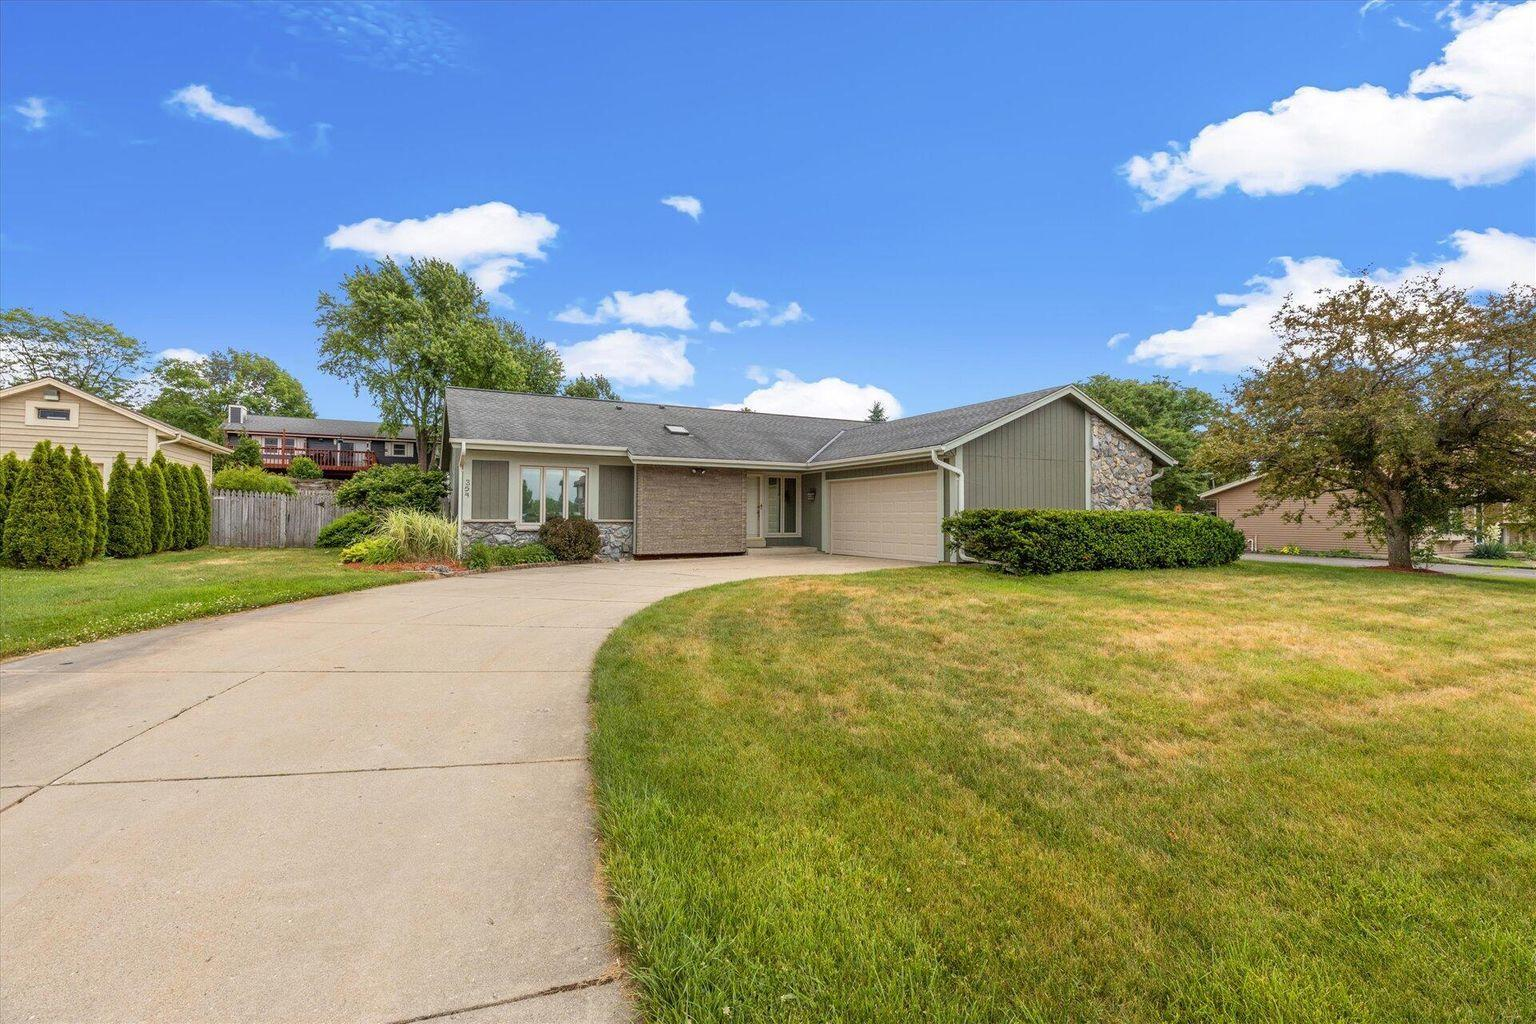 354 Forest Grove Dr, Pewaukee, Wisconsin 53072, 3 Bedrooms Bedrooms, ,2 BathroomsBathrooms,Single-Family,For Sale,Forest Grove Dr,1754367